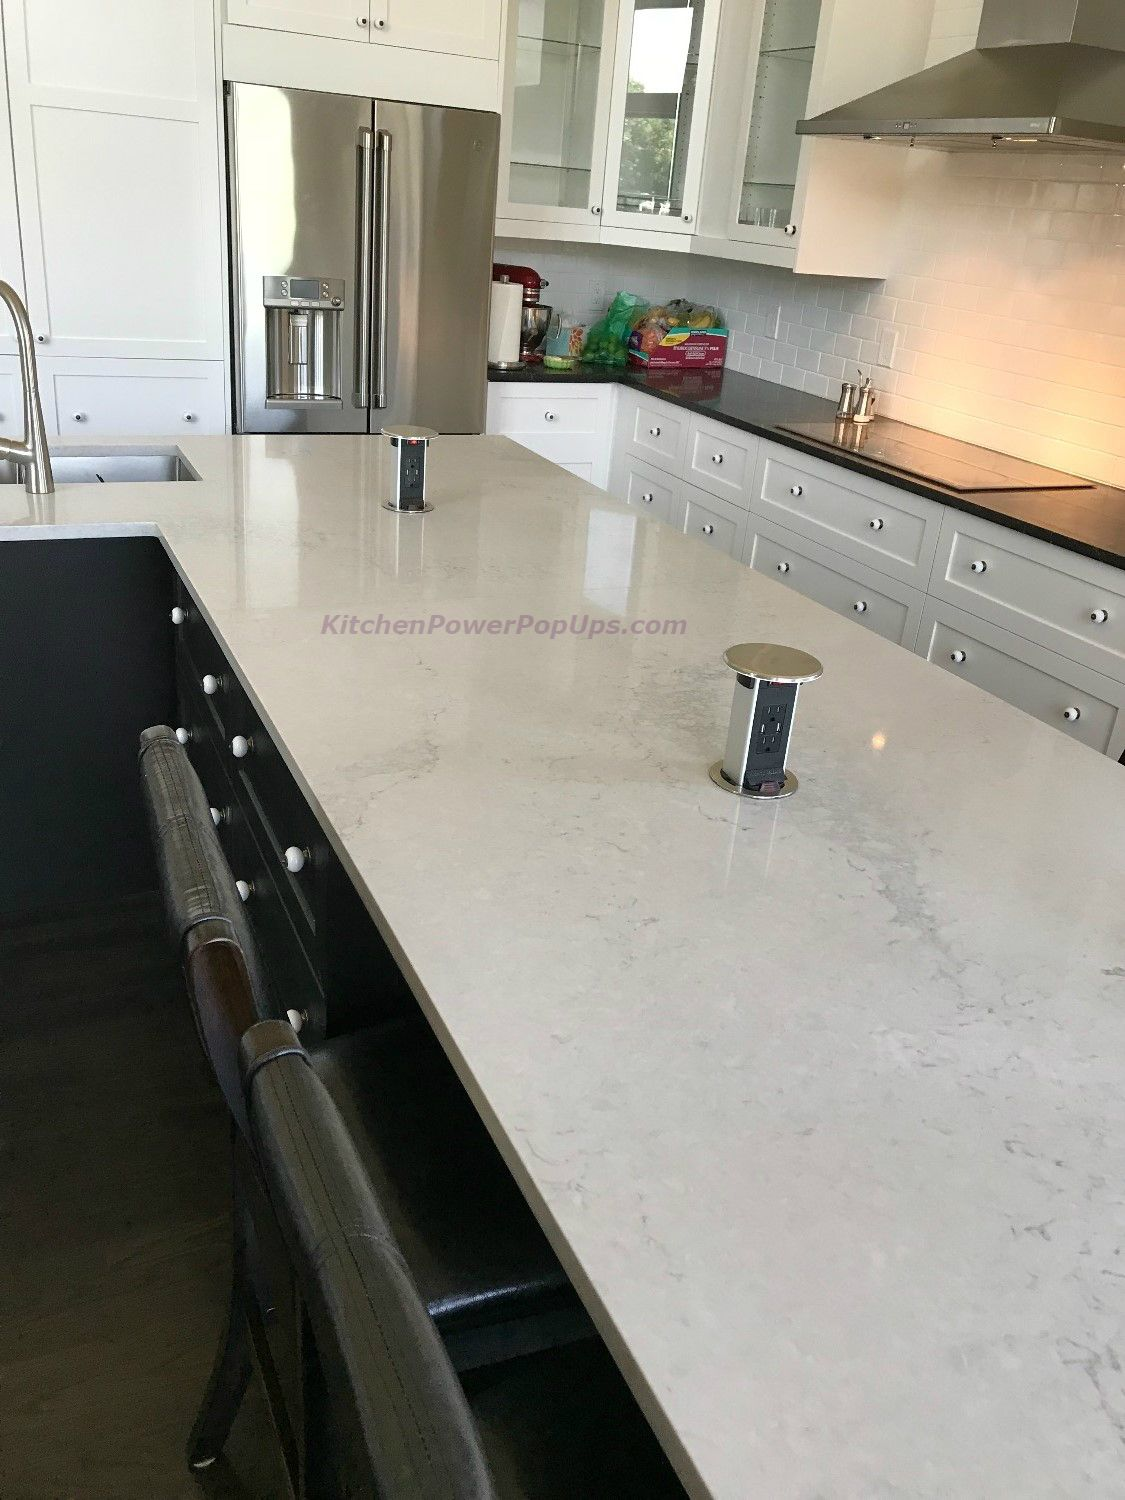 Installing Stainless Steel Countertops Kitchen Counter Spill Proof Round Pop Up 15a Usb Outlet Stainless